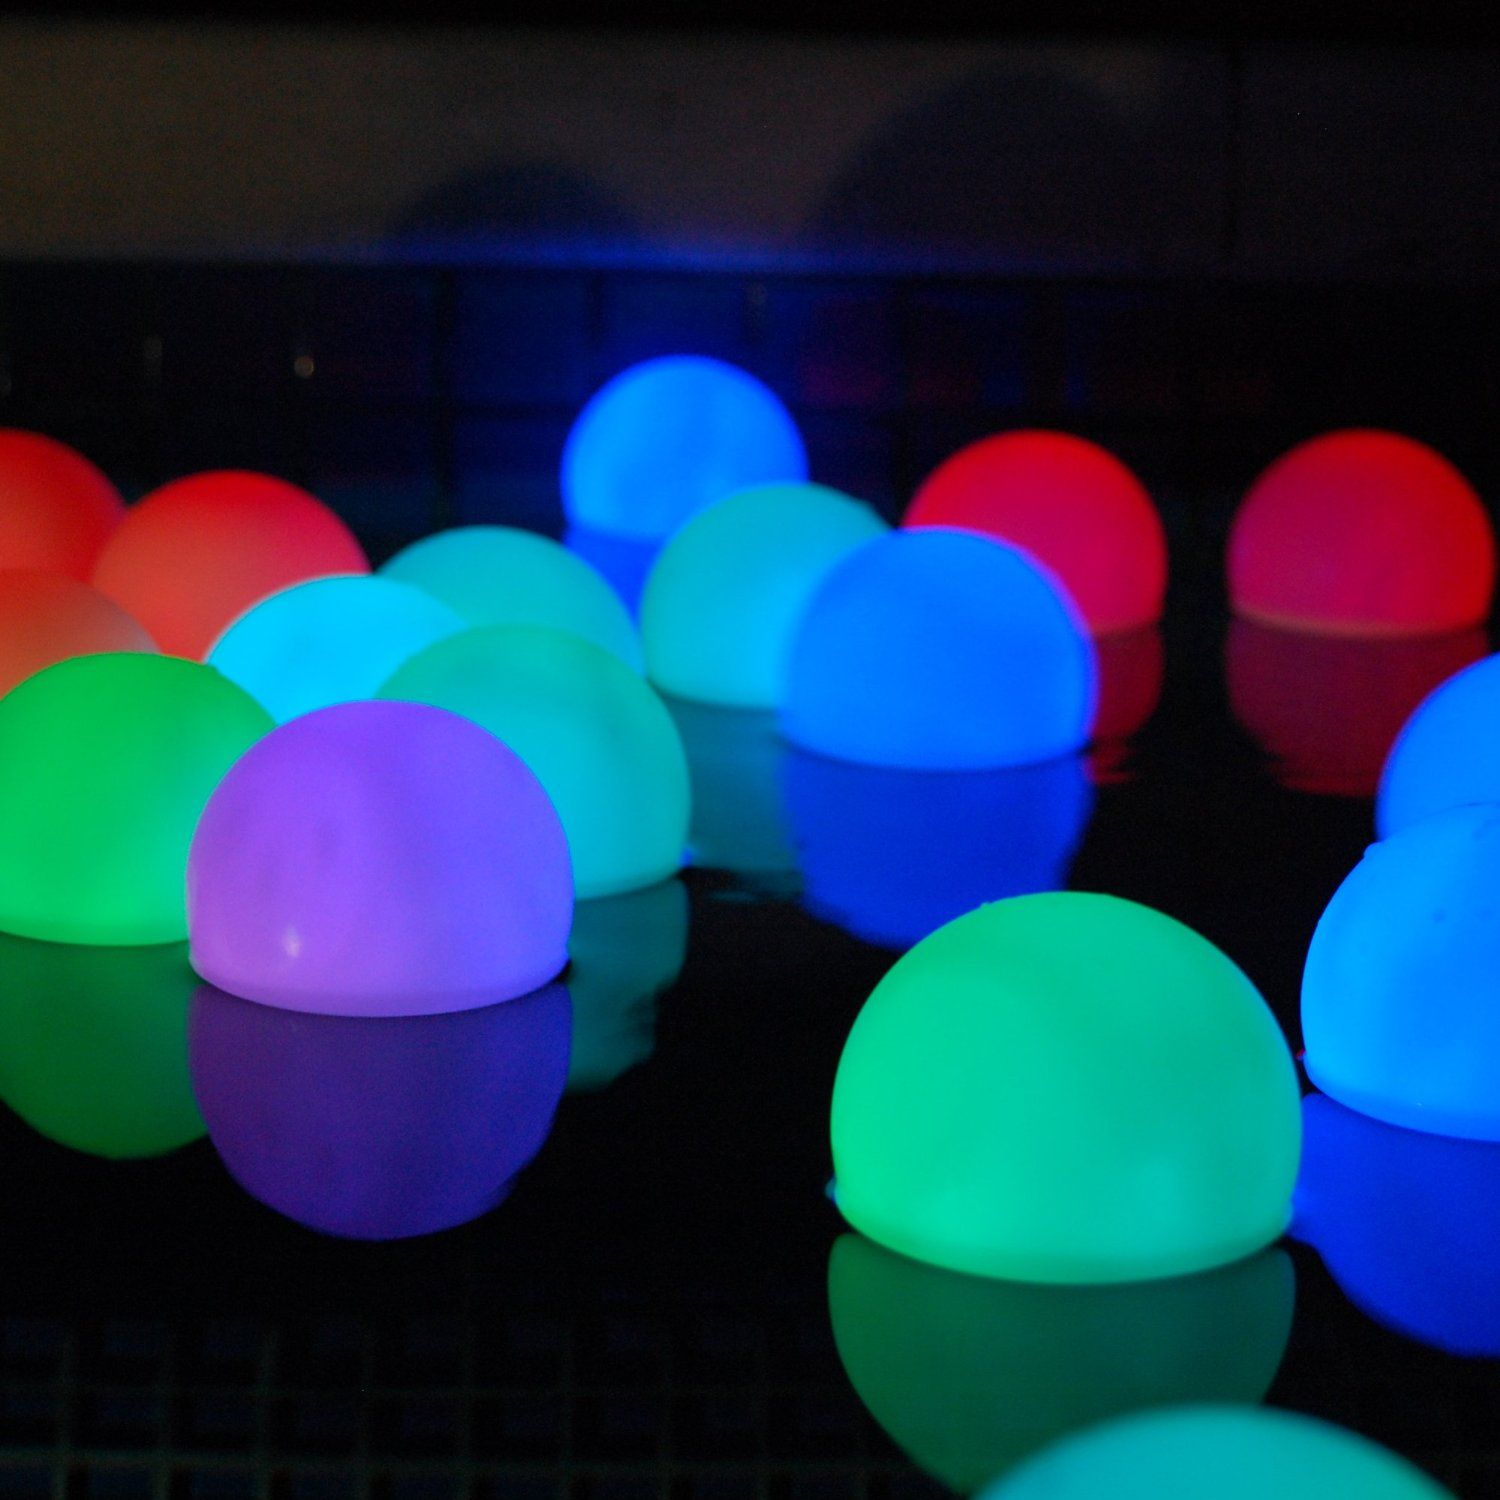 Amazon.com : Set Of 12 Mood Light Garden Deco Balls (Light Up Orbs